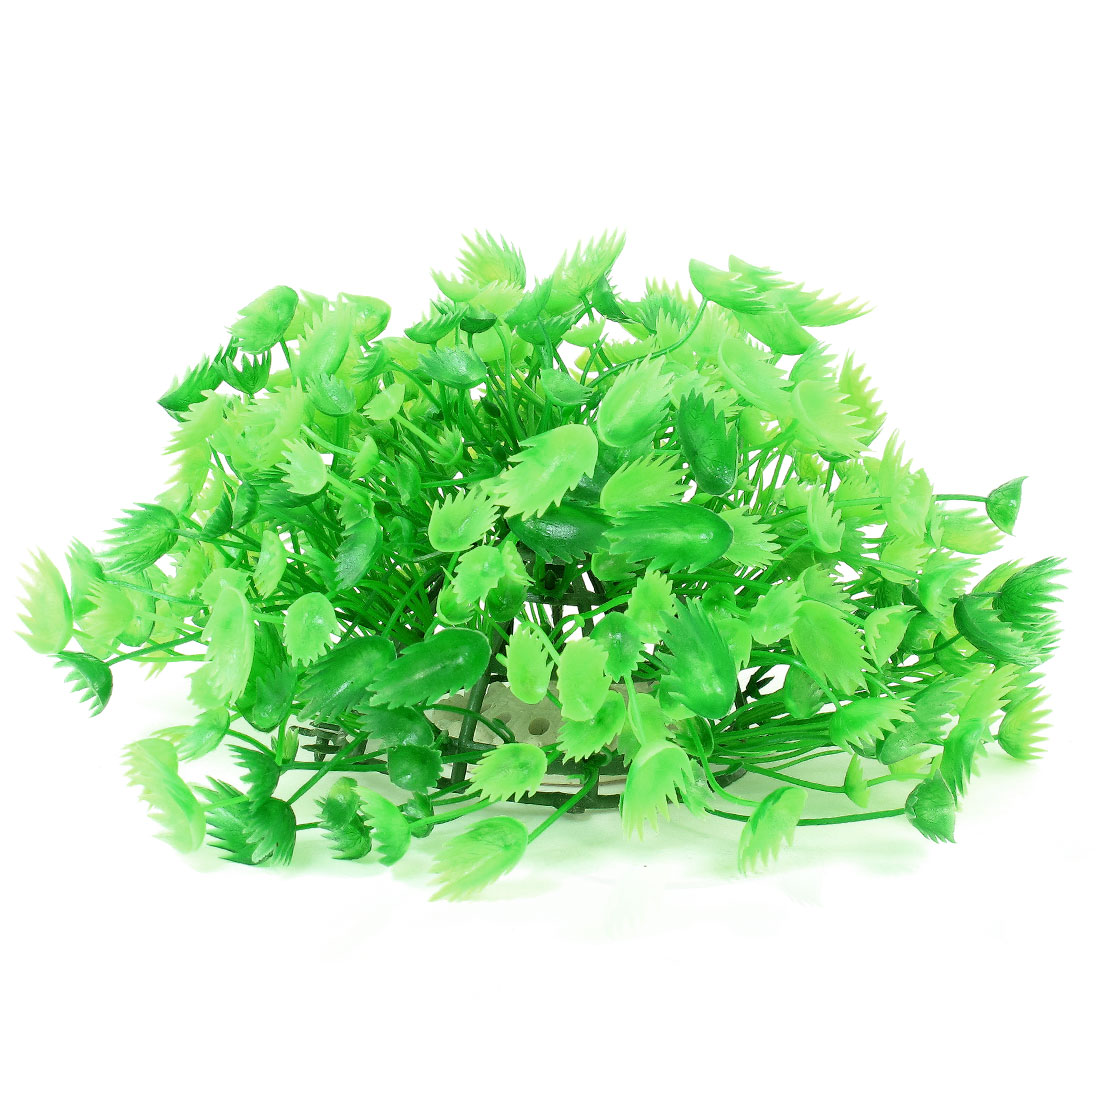 "Green Emulational Fish Tank Aquarium Grasses Decor 4.7"" High"